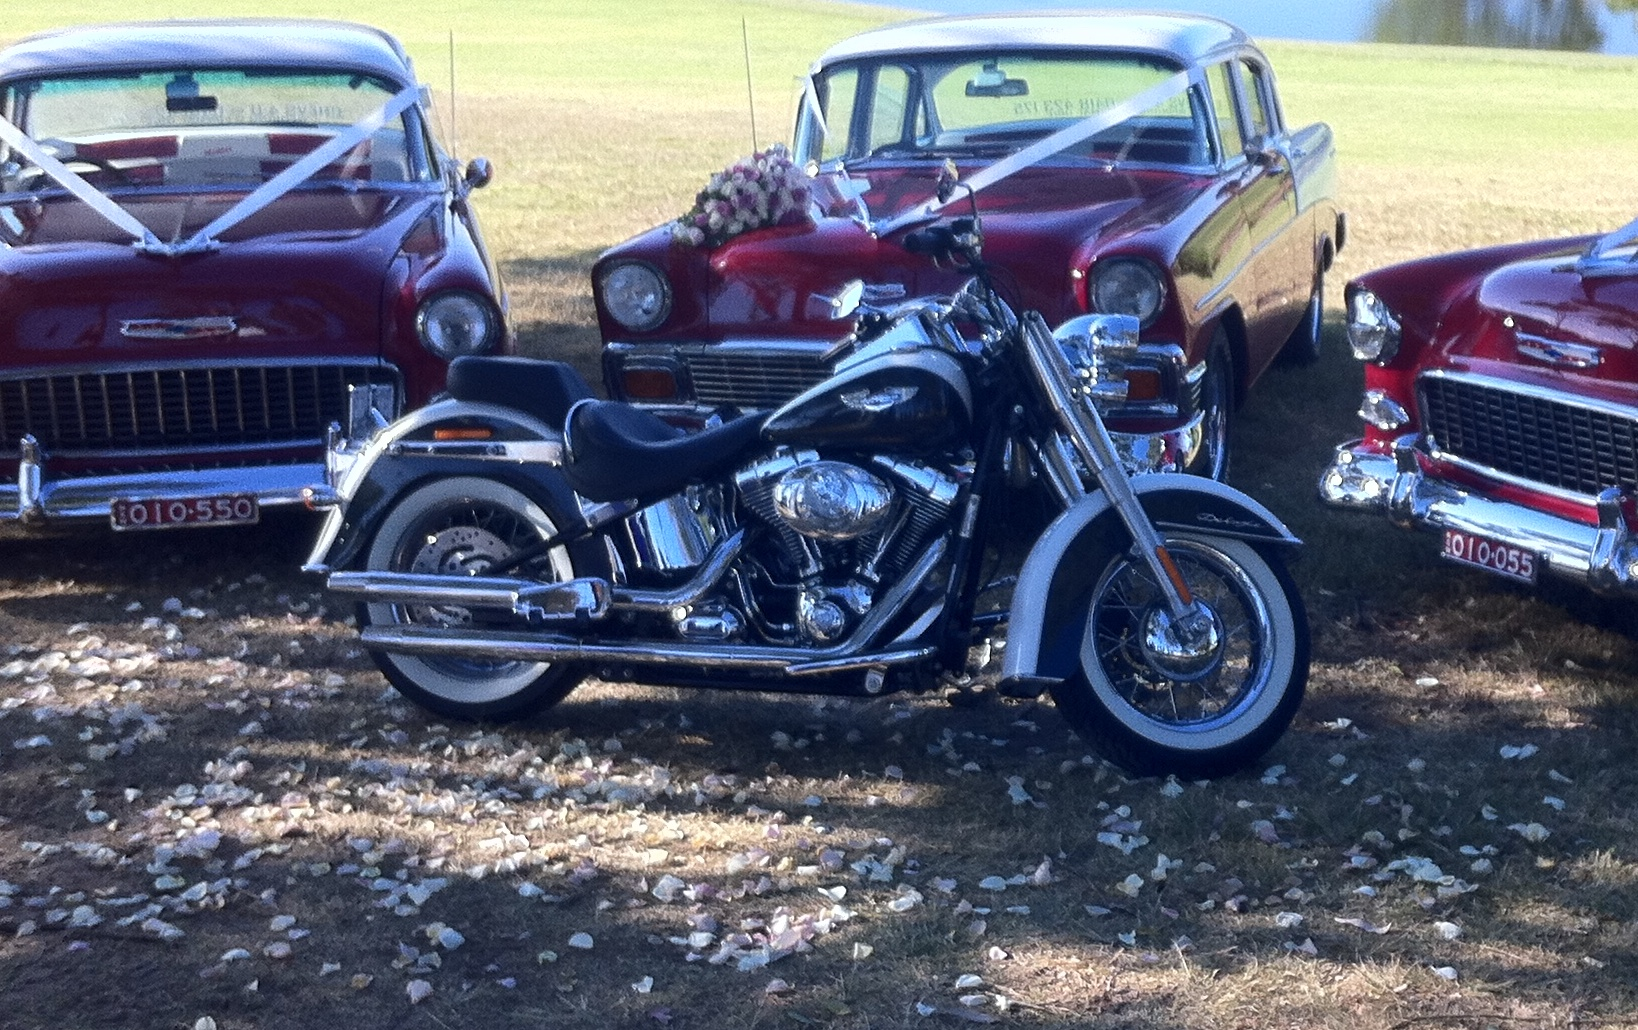 Harley Davidson Heritage Soft Tail Deluxe